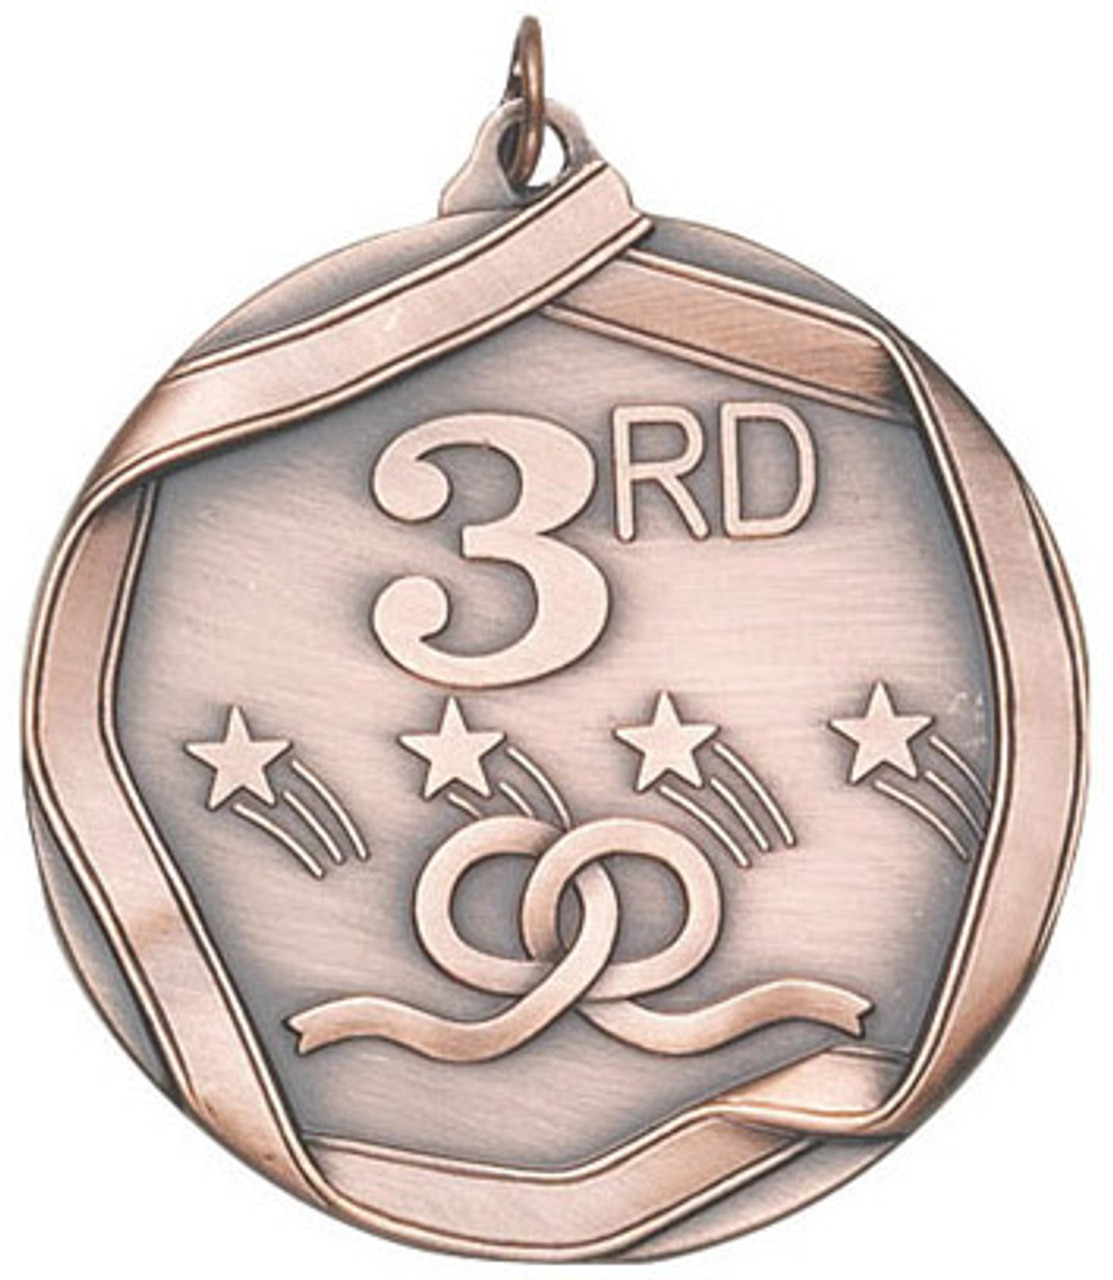 Ribbon Third Place Medal